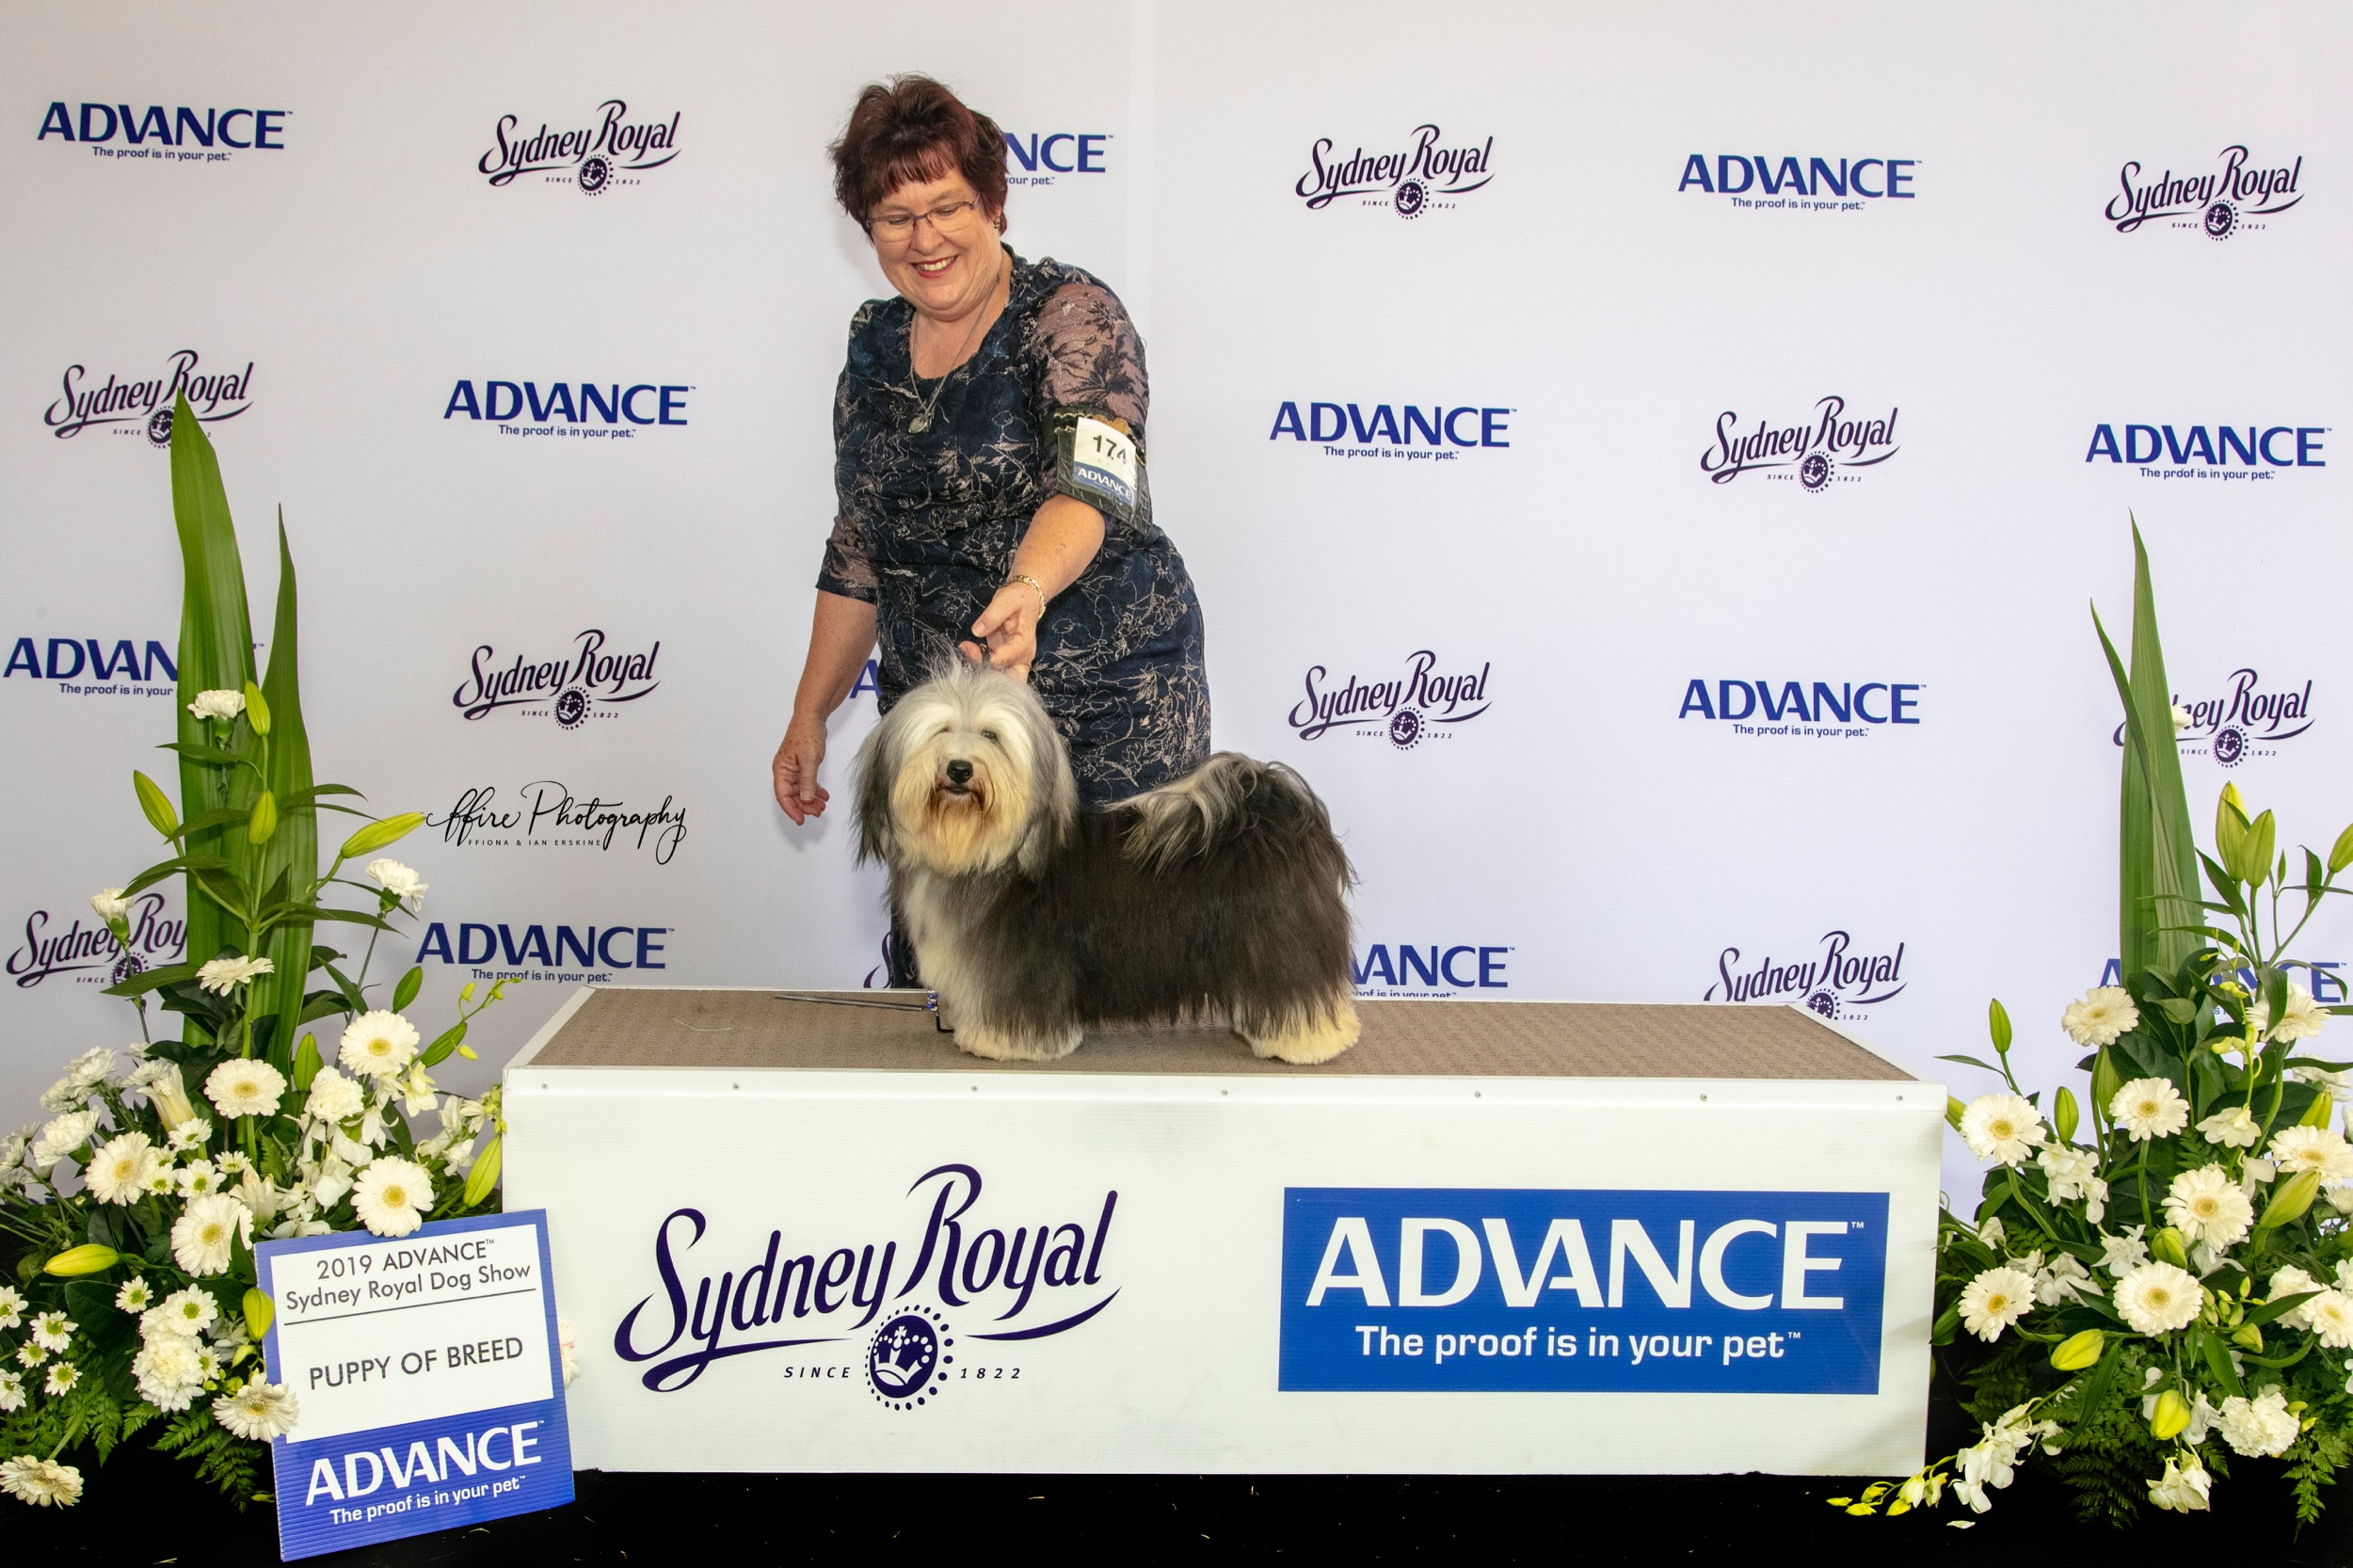 Alexis was Puppy Of Breed at 2019 Sydney Royal Dog Show